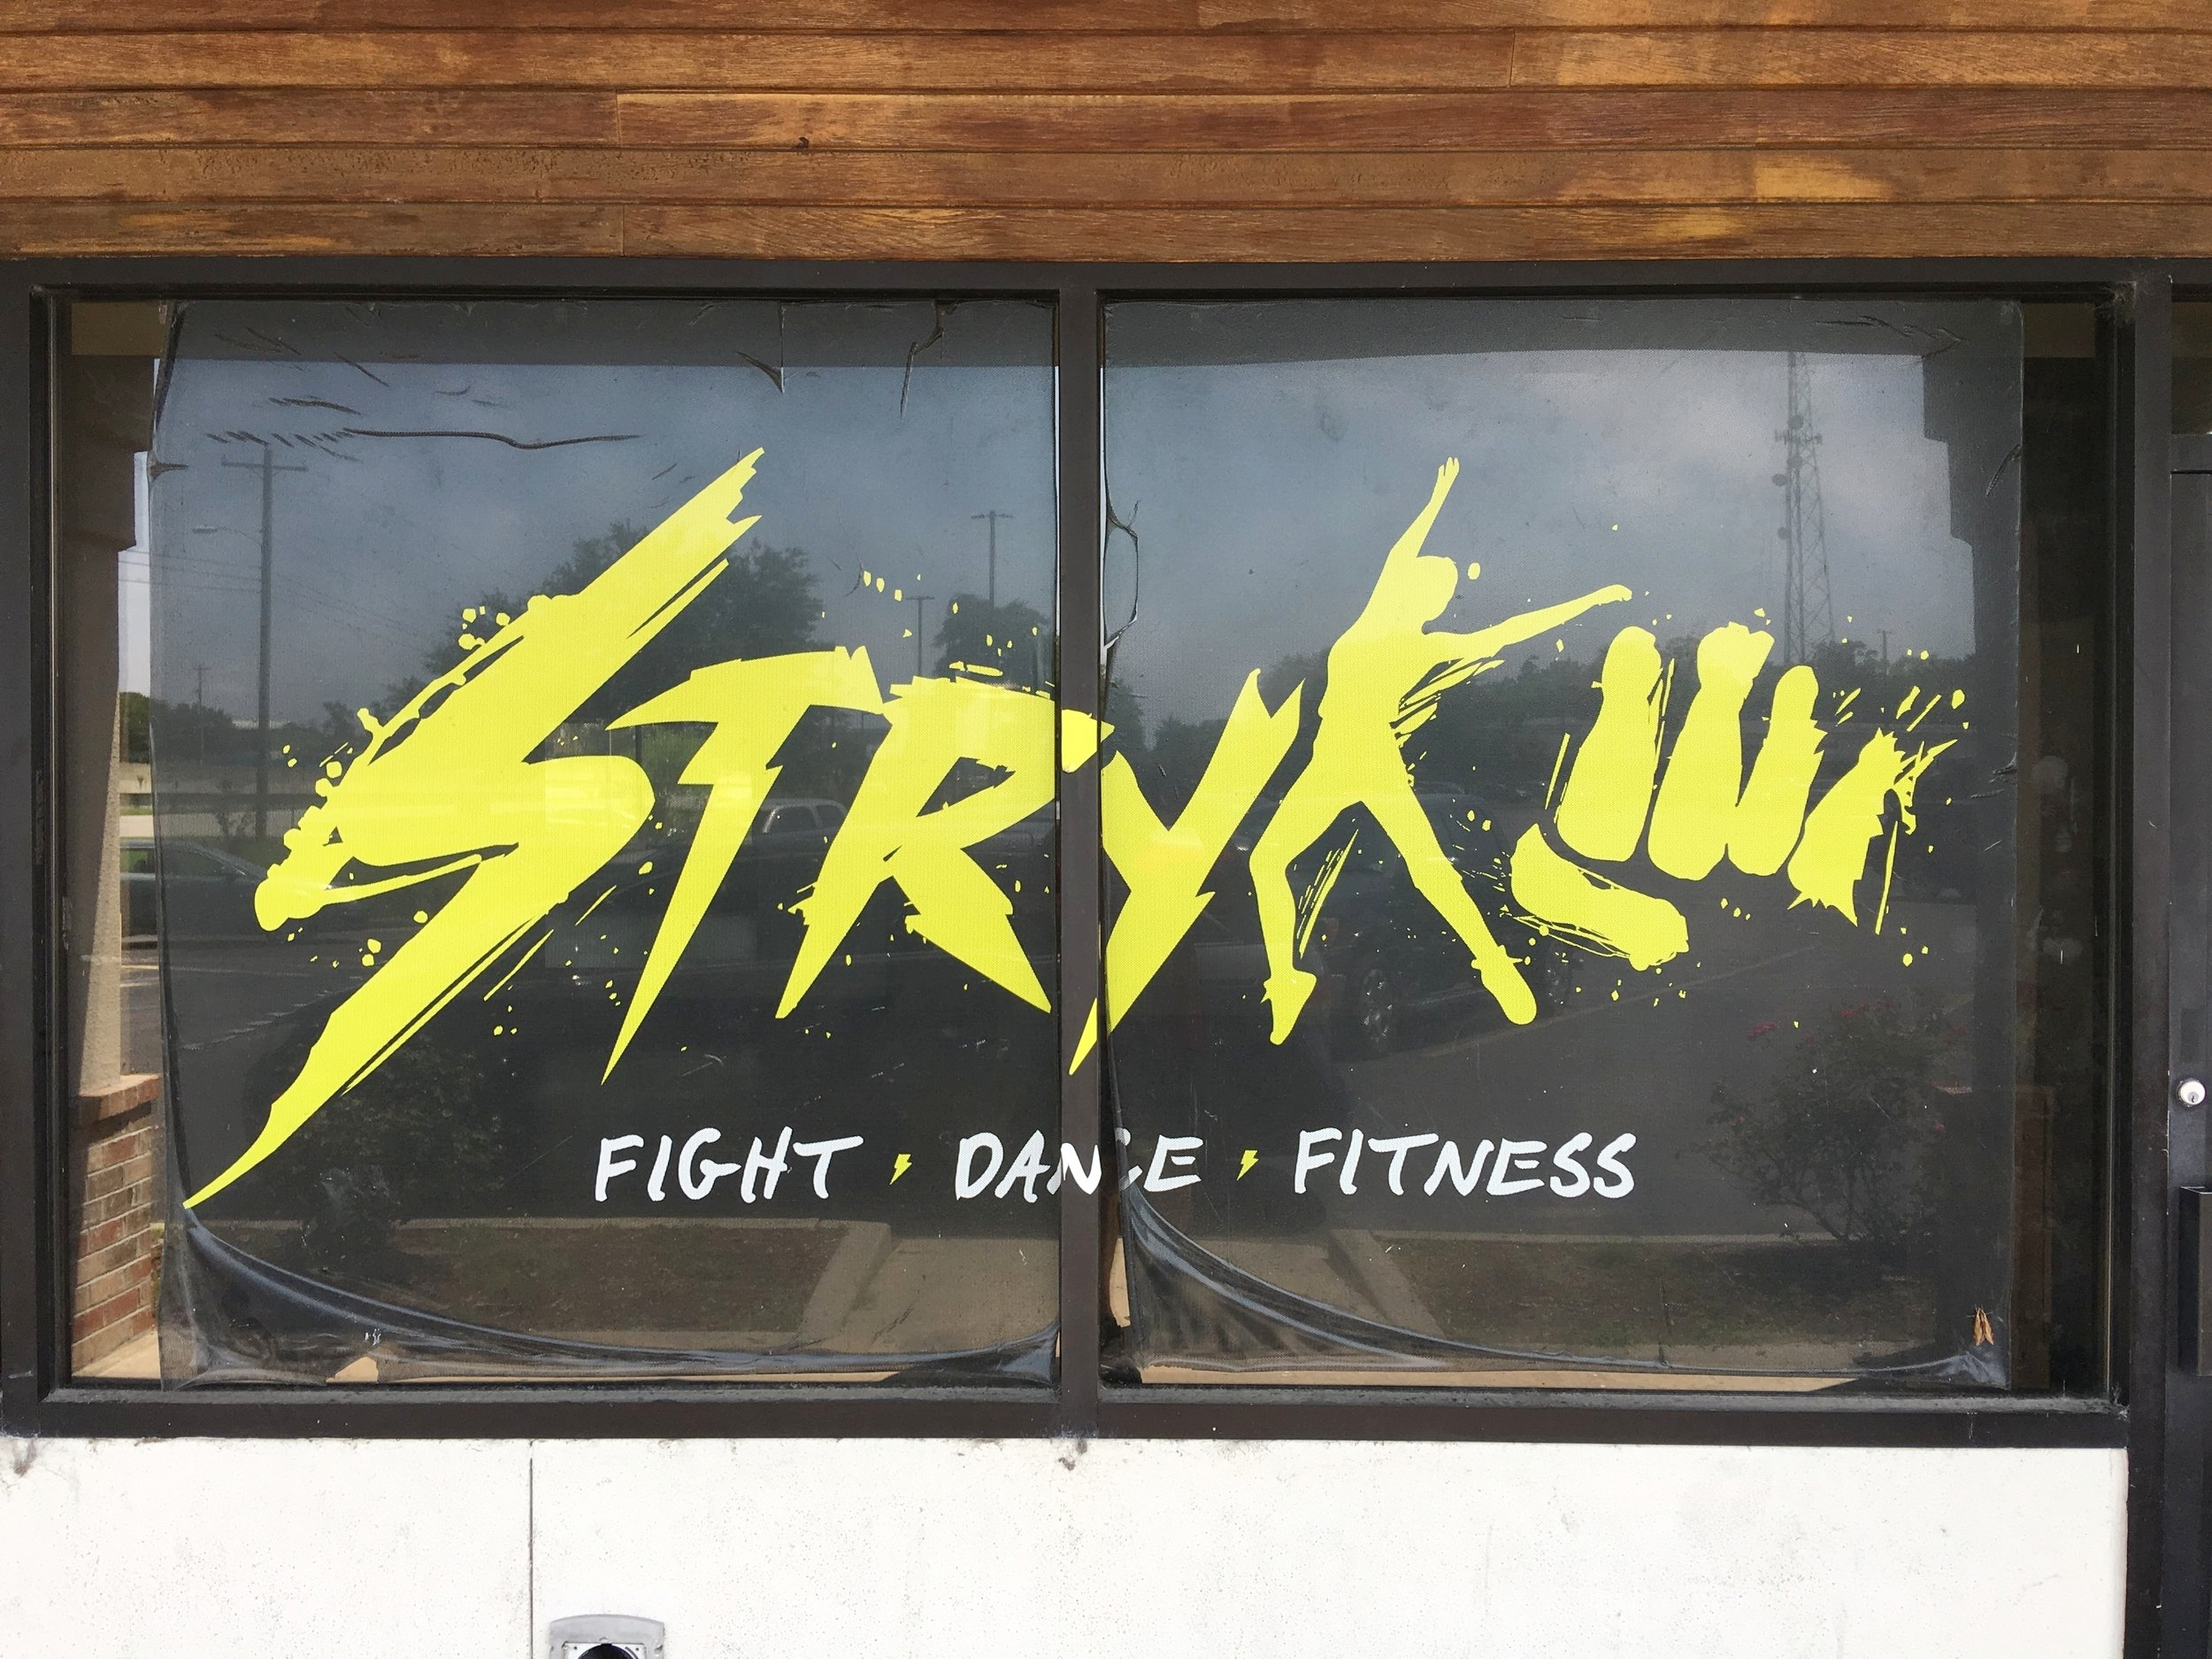 Stryke Fitness Studio Charleston SC Fight Dance Fitness Workout15.JPG